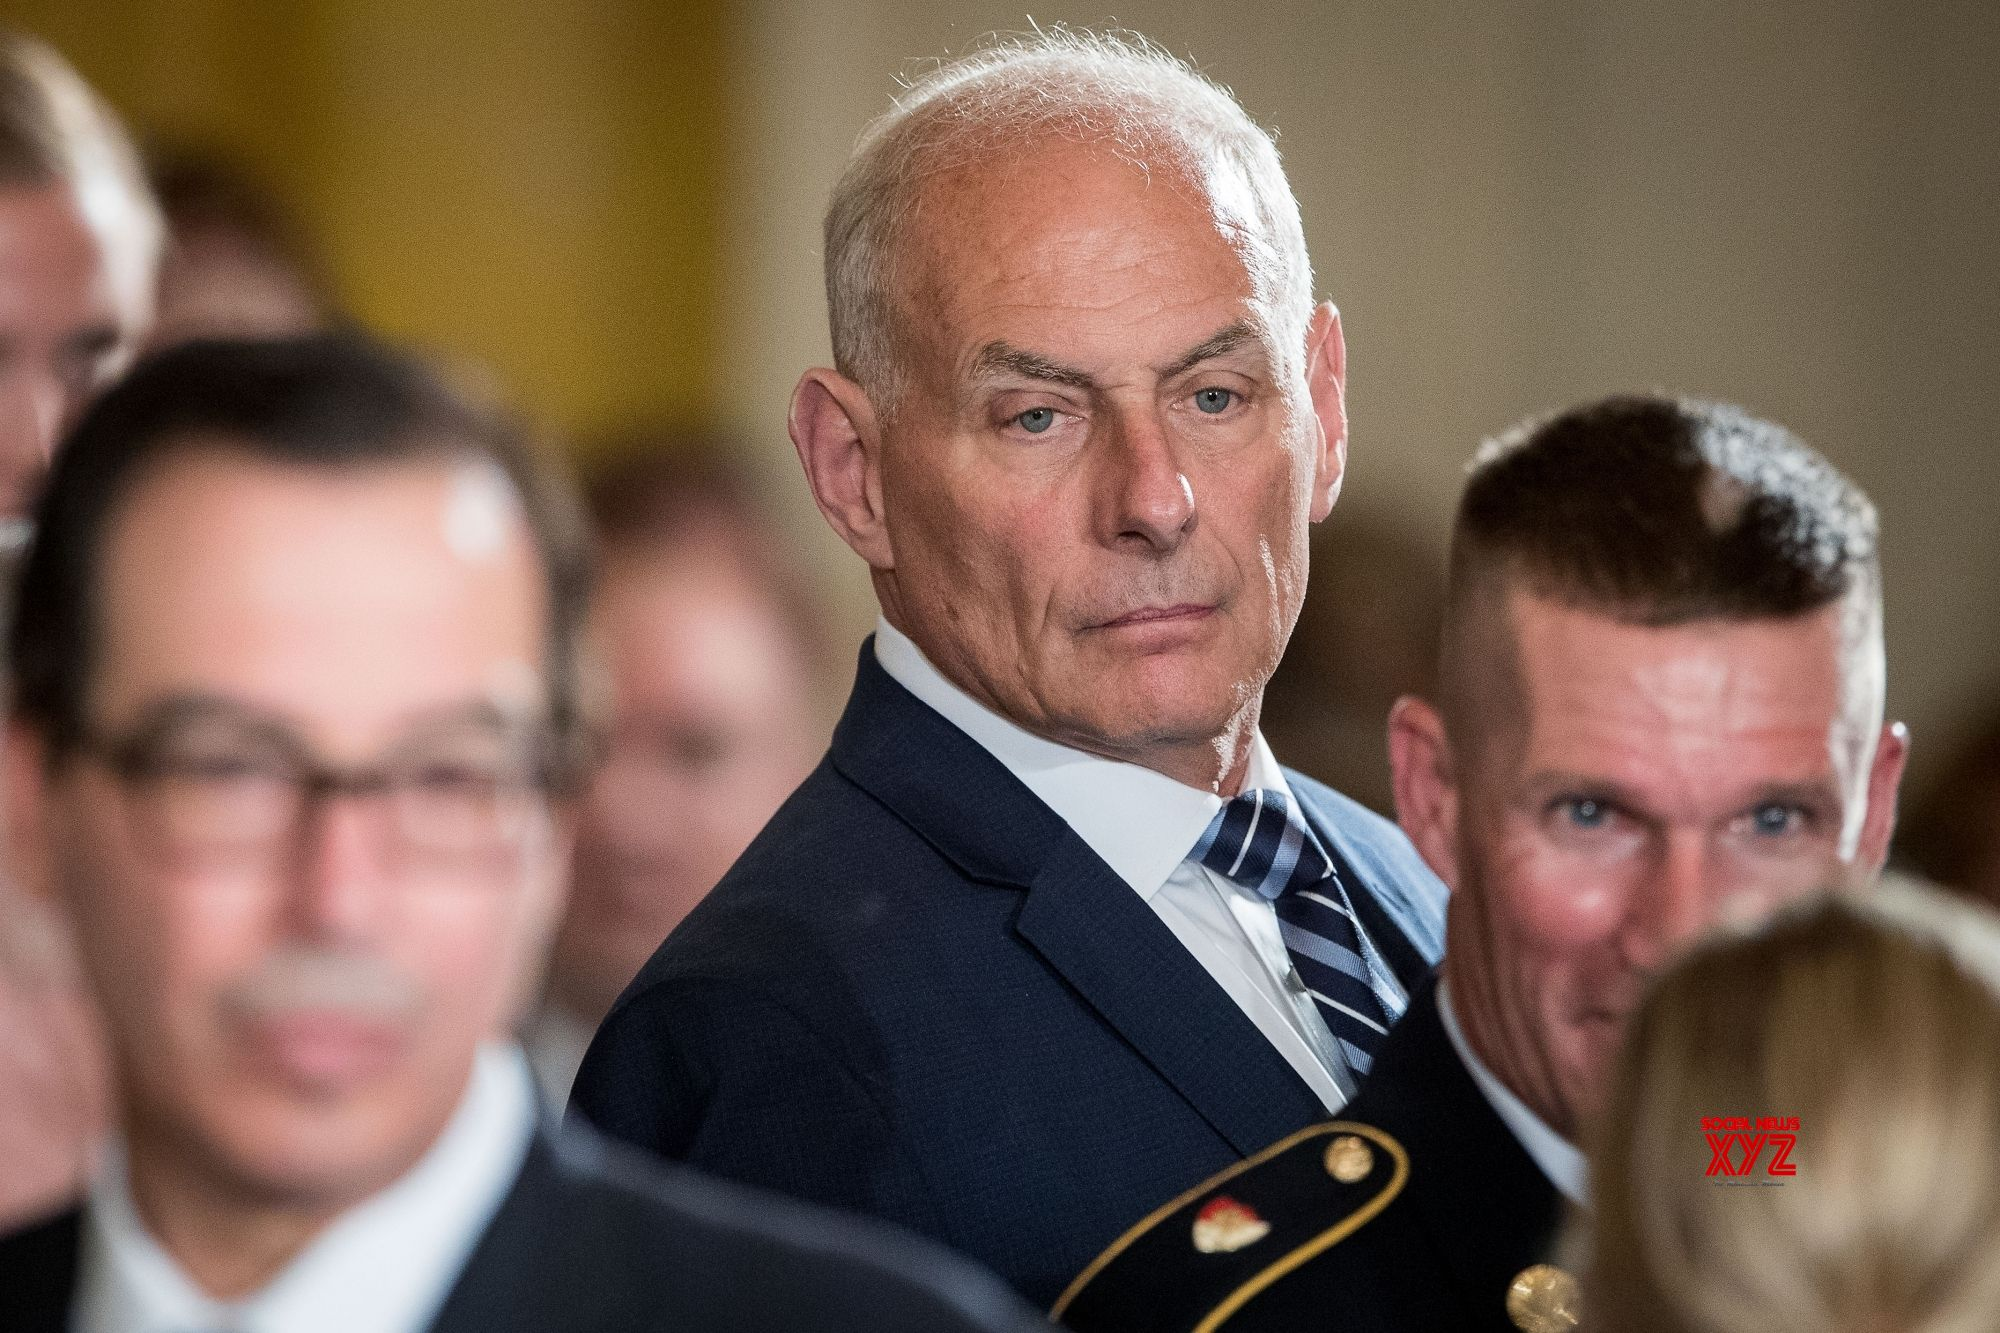 White House Chief of Staff John Kelly may resign soon: Report